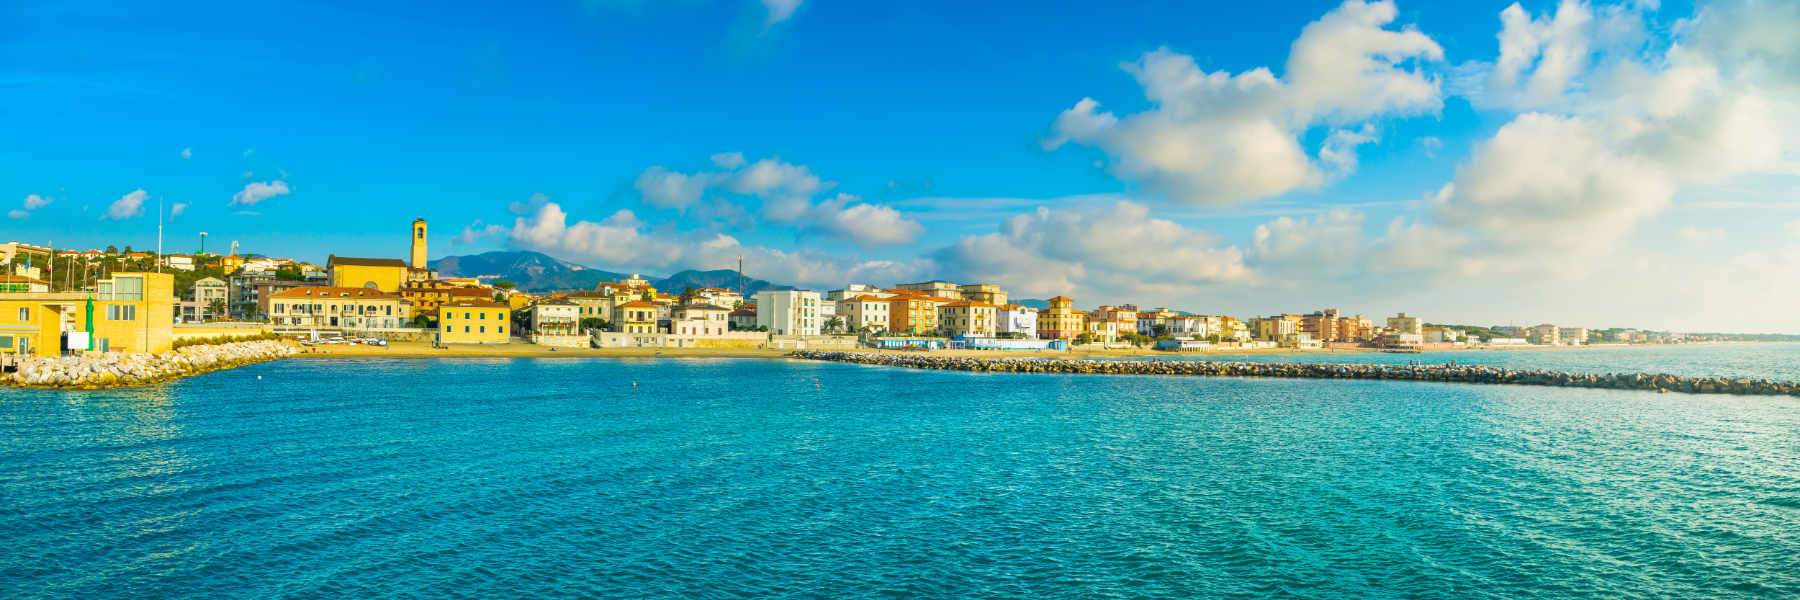 Image of San Vincenzo beach as concept for wise living over 50s travel destinations guides - from Route 66 to bucket list ideas